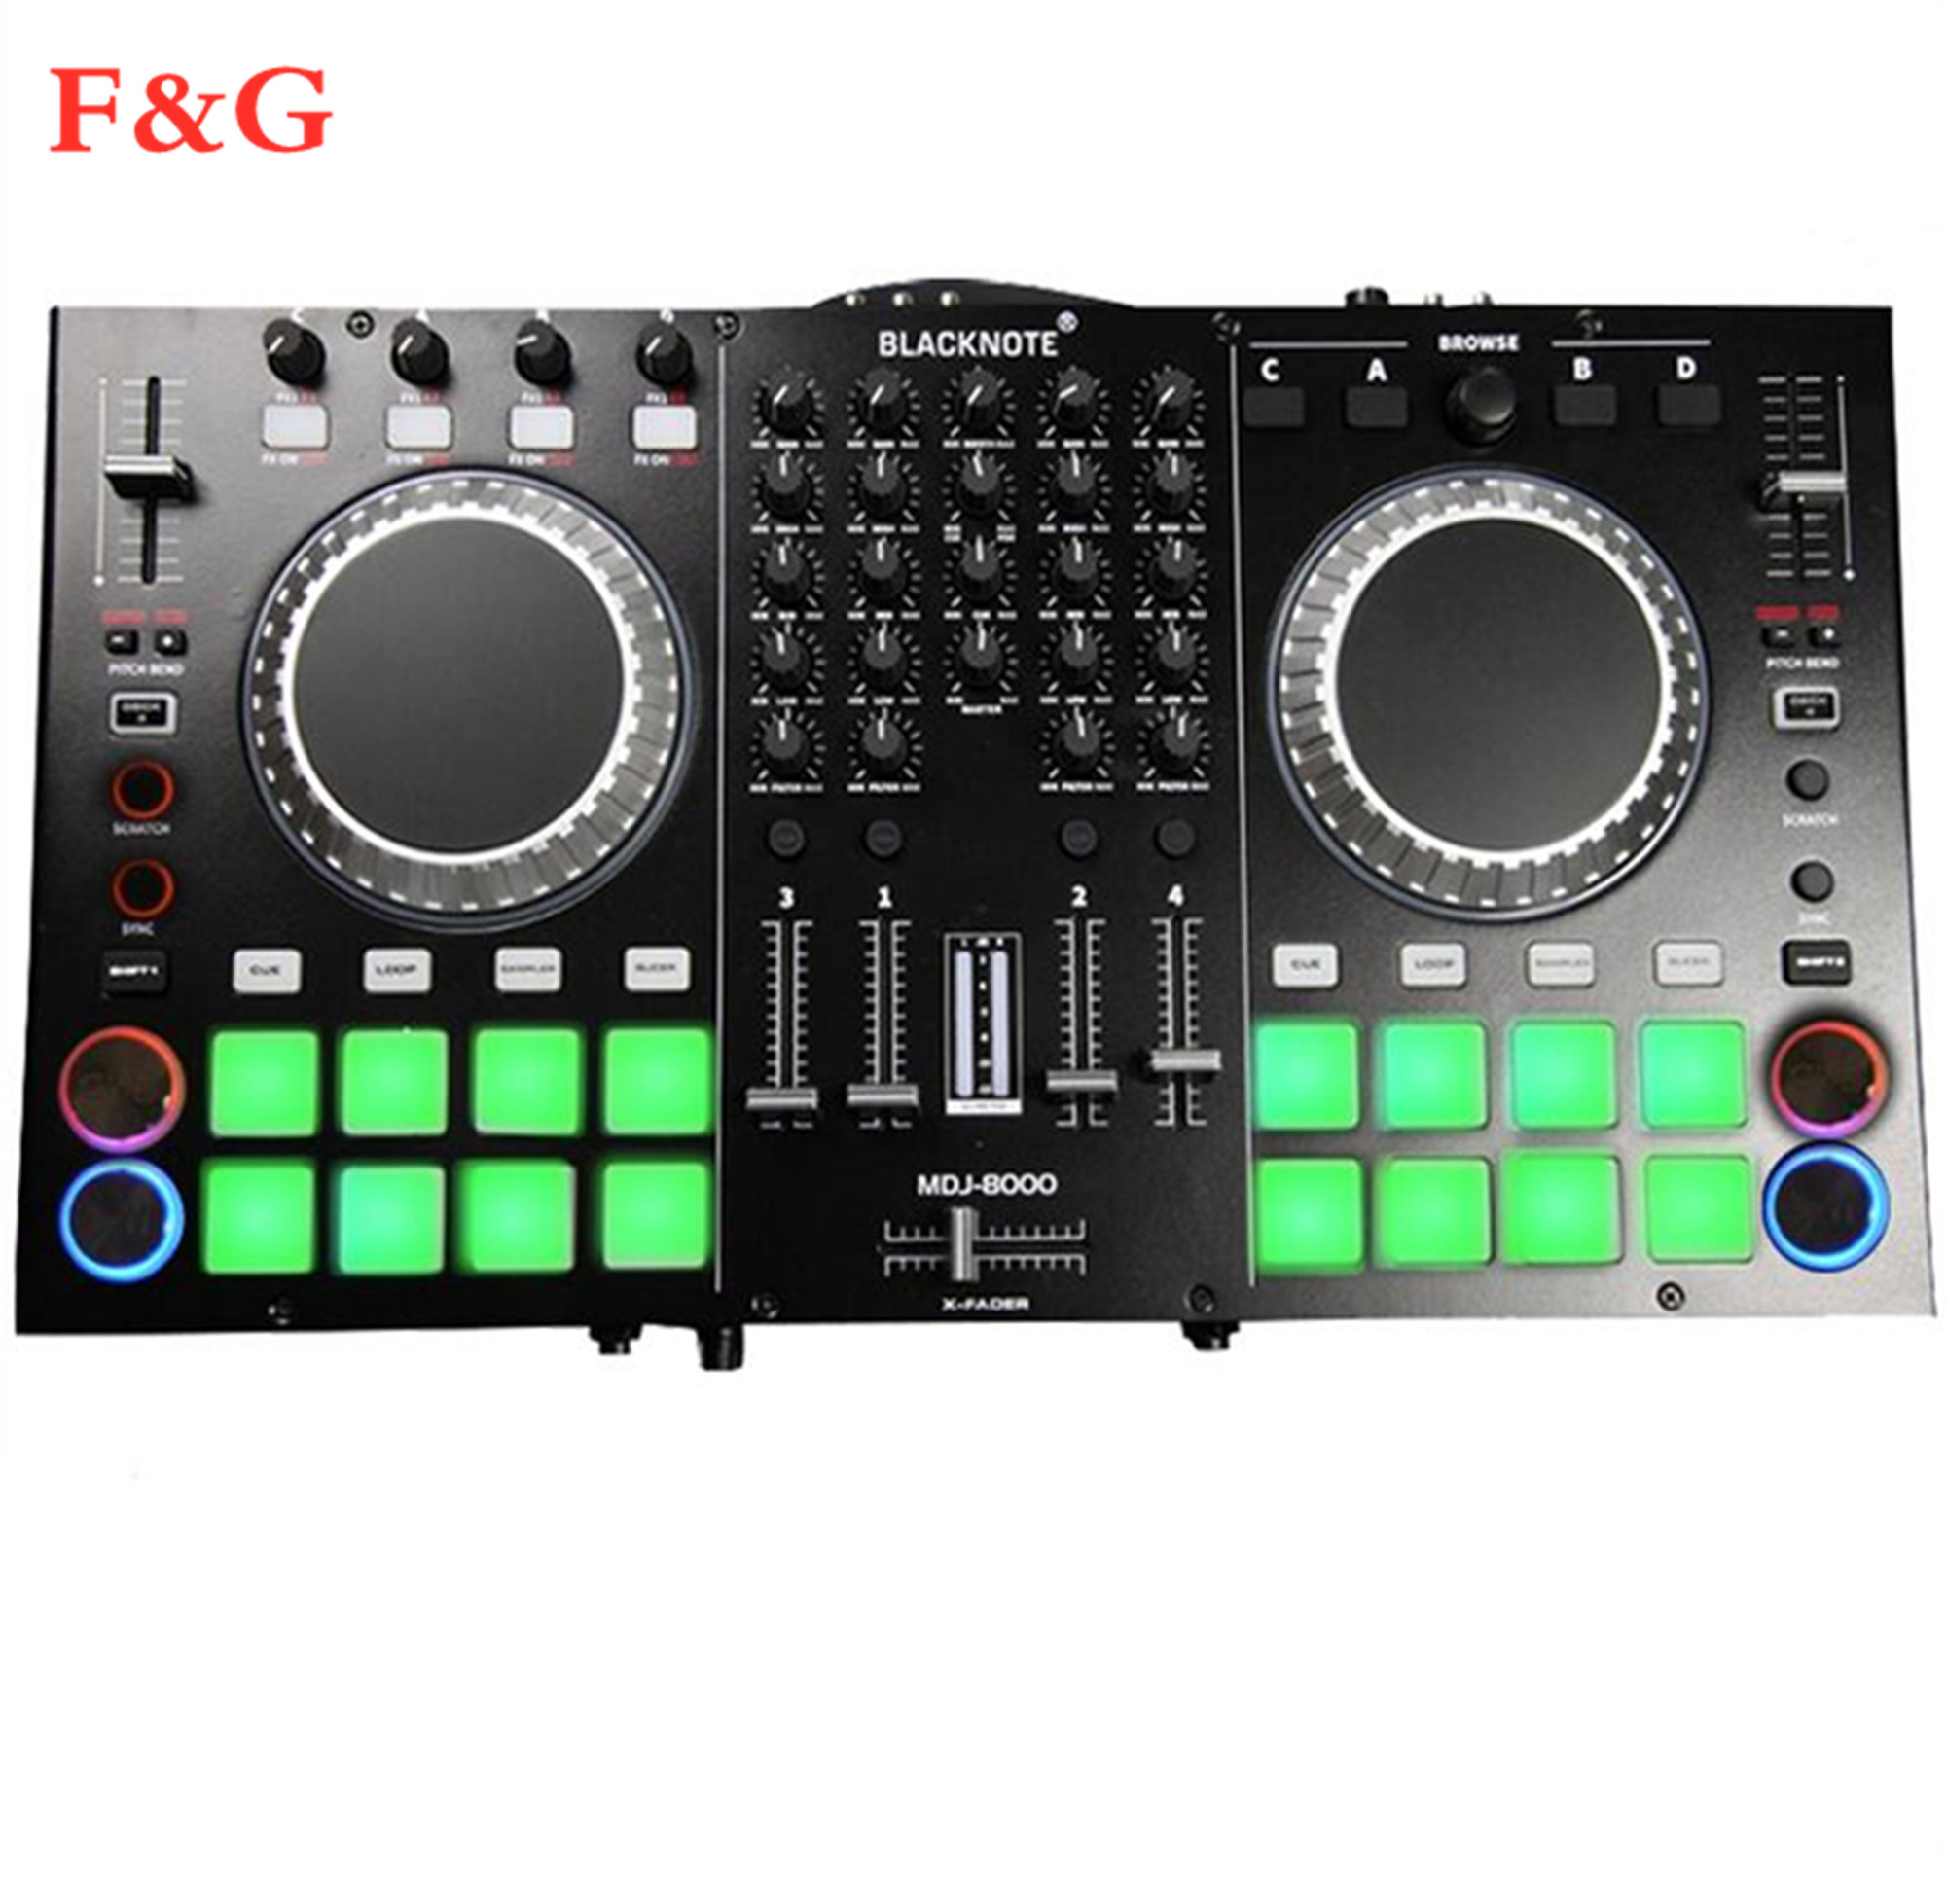 Controller To Play Players Playing Disc Audio Mixing Console Players Sound Mixer Mesa De Mezclas Dj .DJ Mixer